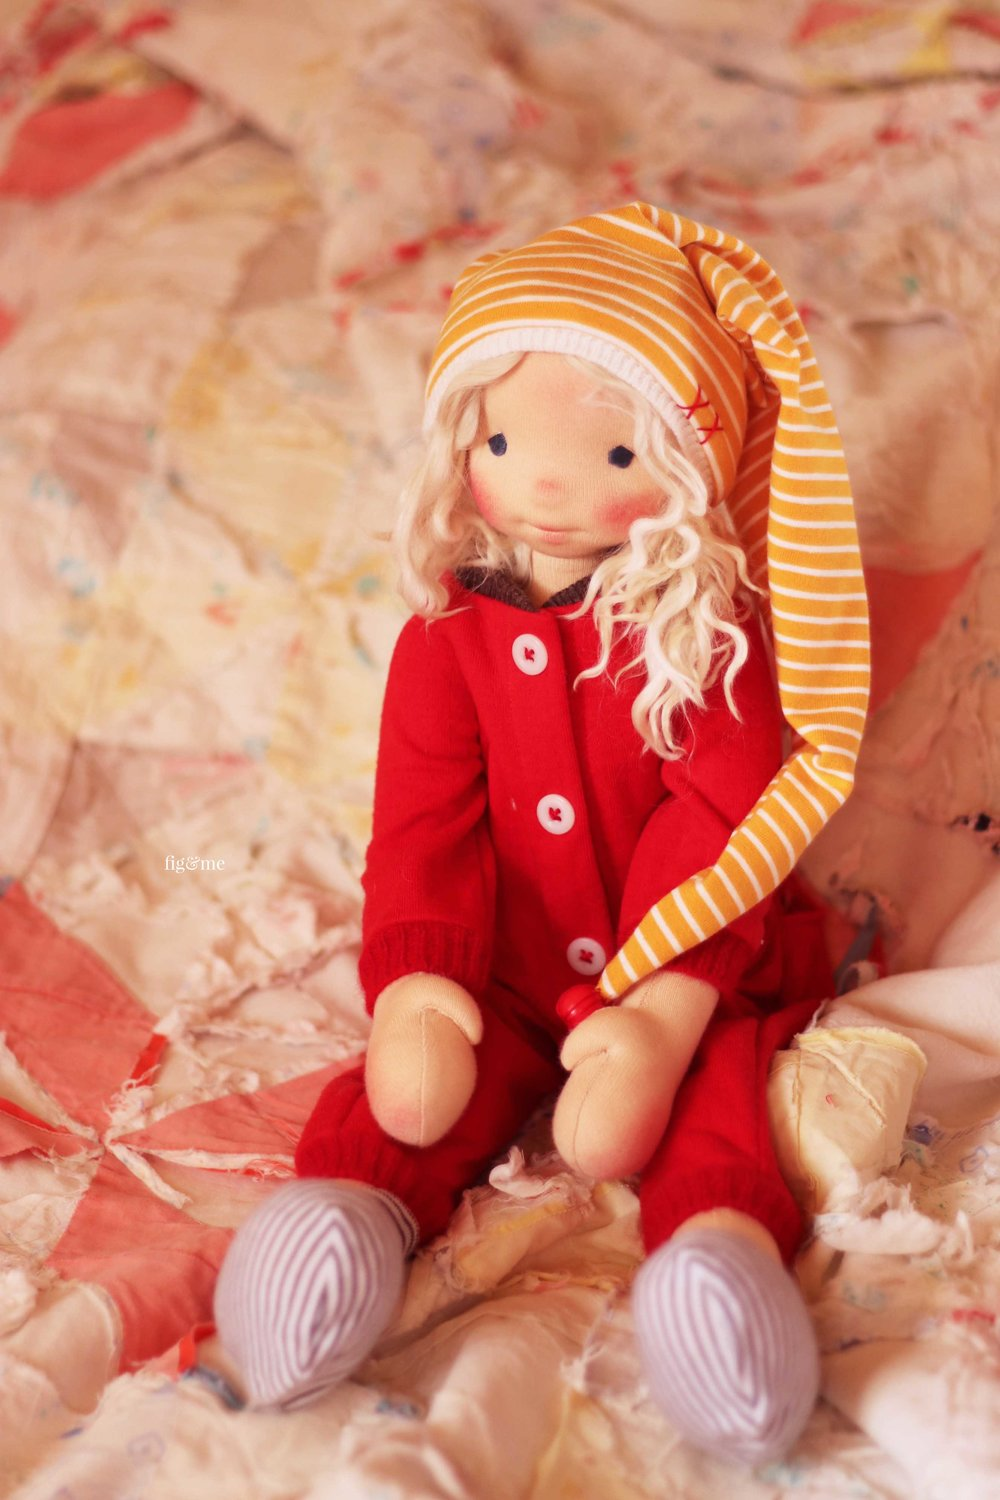 Runa, envisioning all the baking she wants to do. A natural fiber art doll by Fig and me.